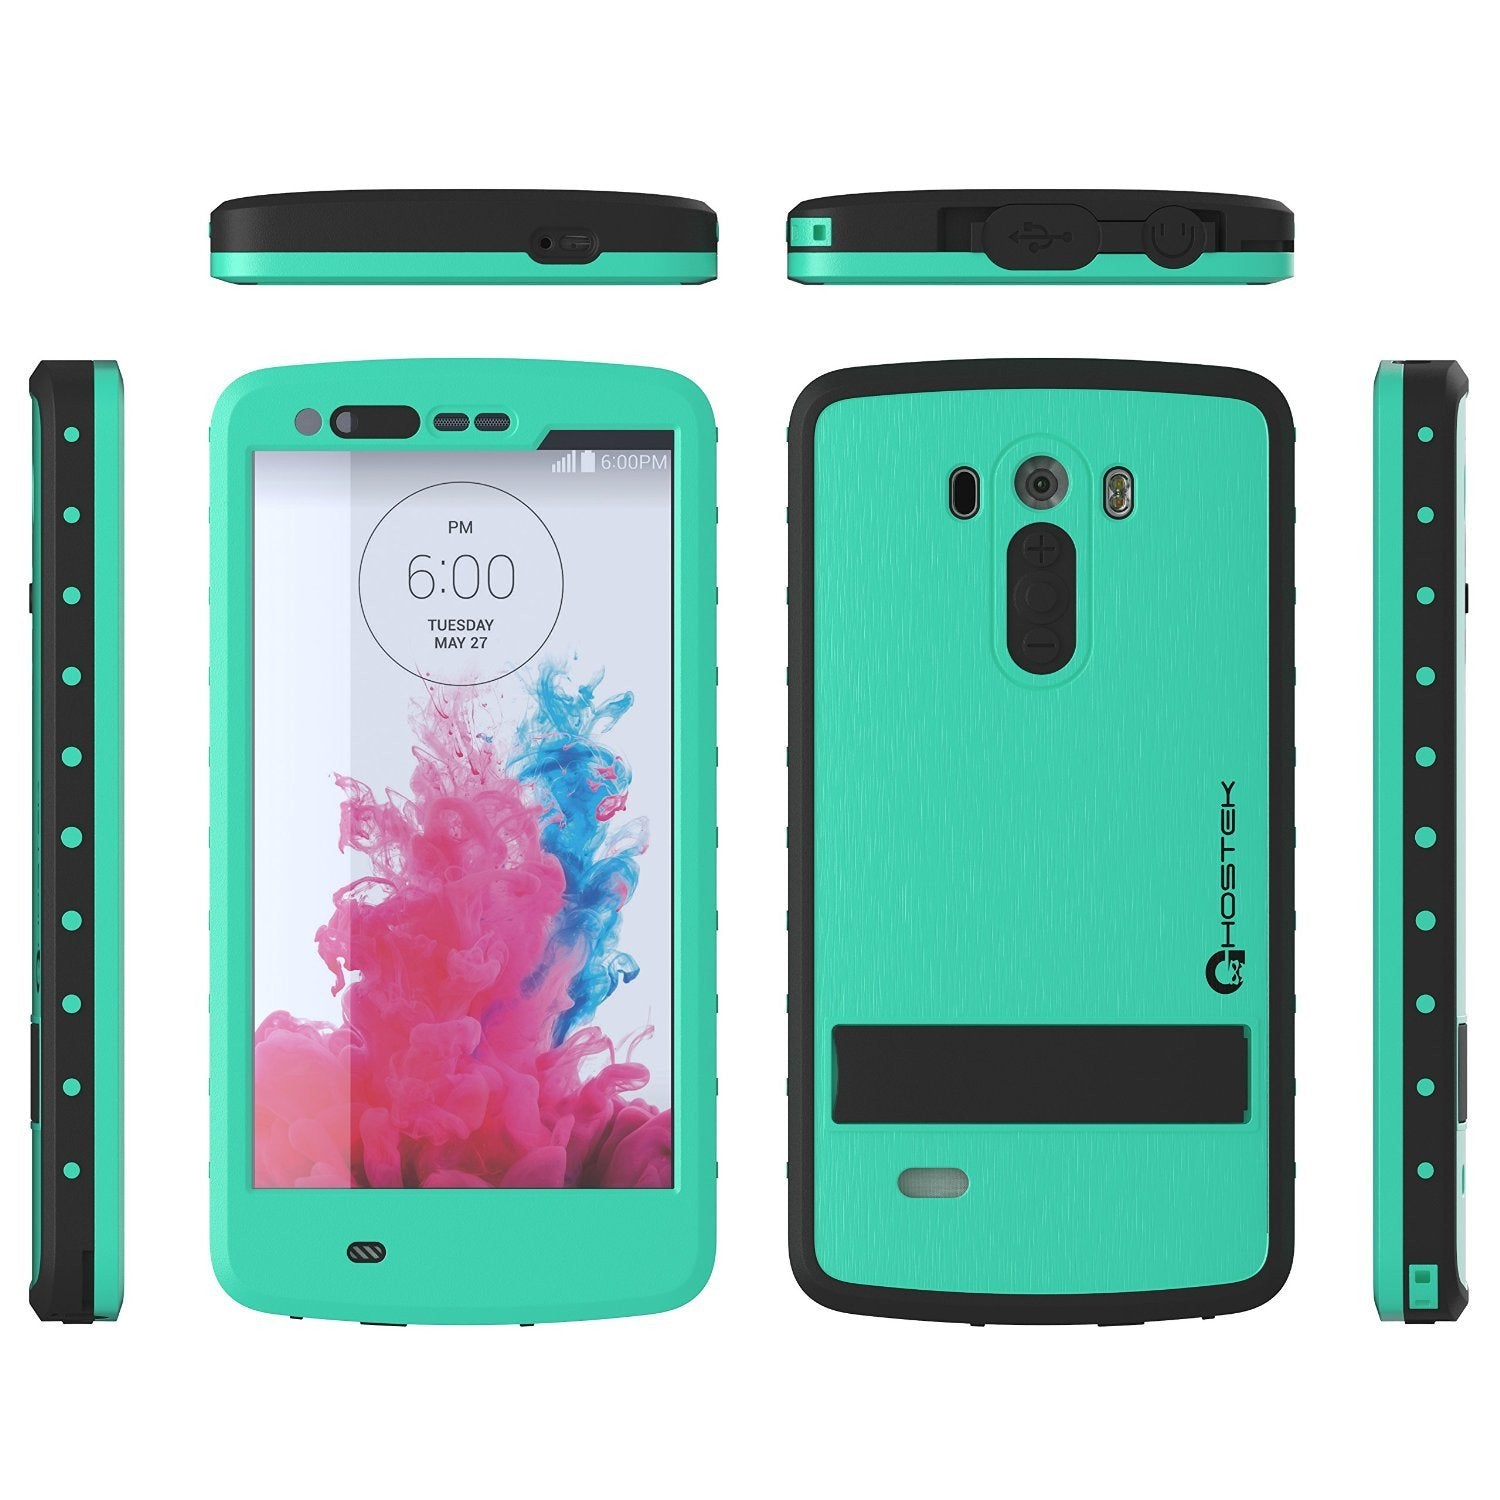 LG G3 Waterproof Case, Ghostek Atomic Teal W/ Attached Screen Protector  Slim Fitted  LG G3